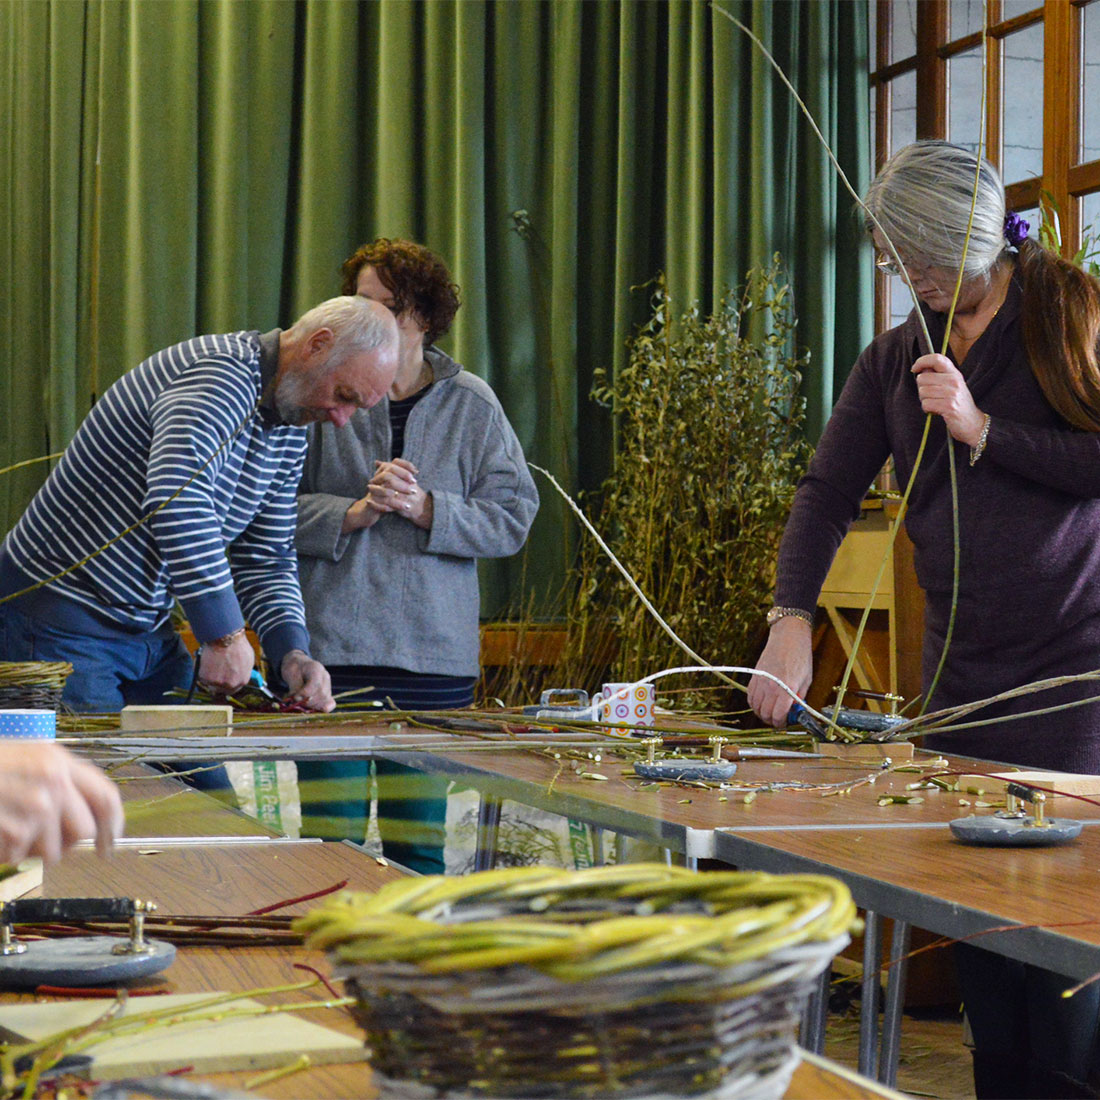 Willow Basket Weaving Workshop